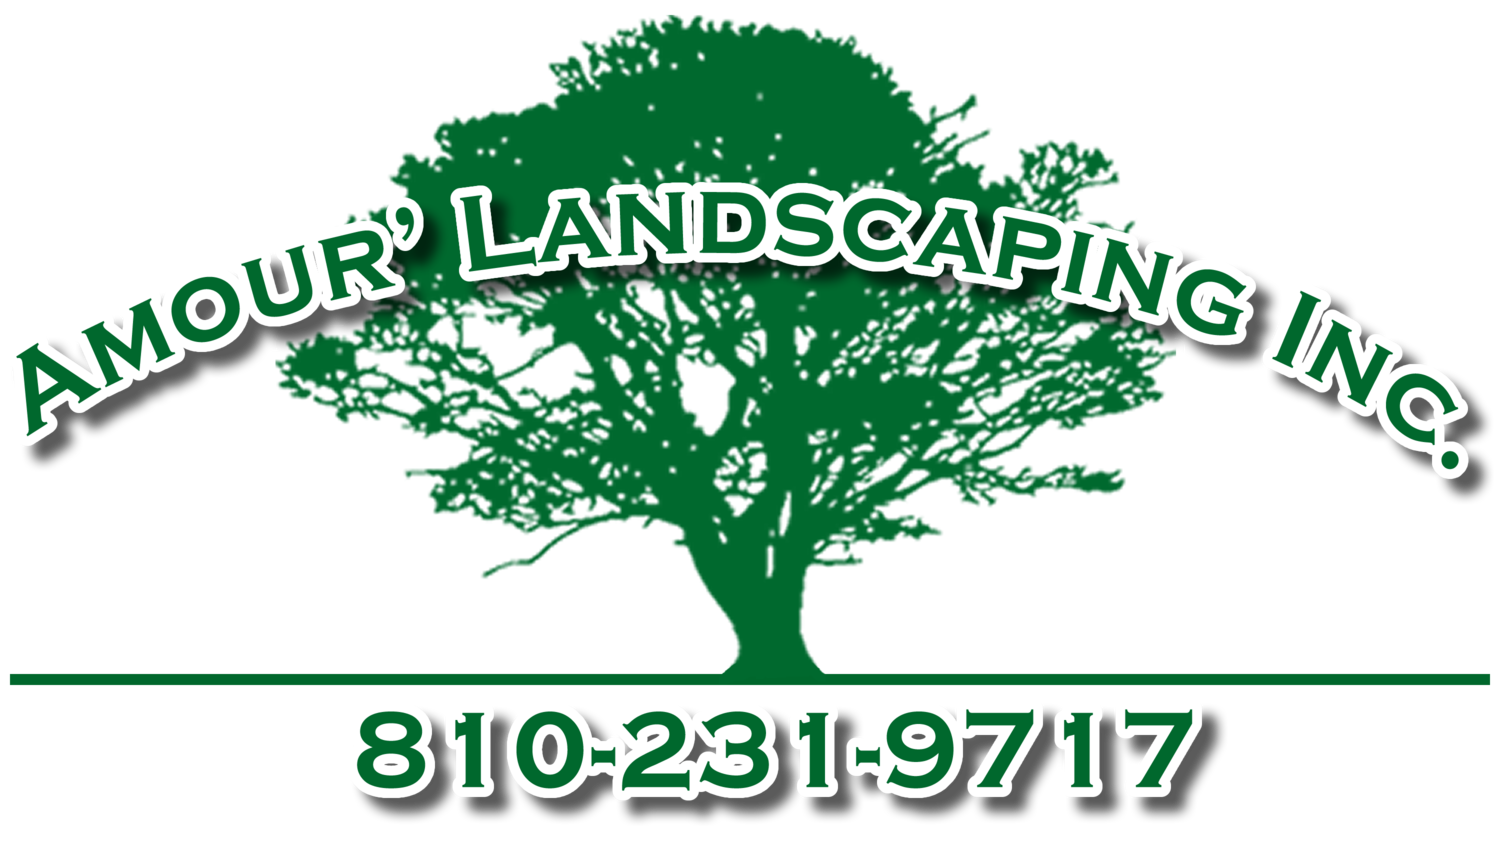 Amour' Landscaping Inc.